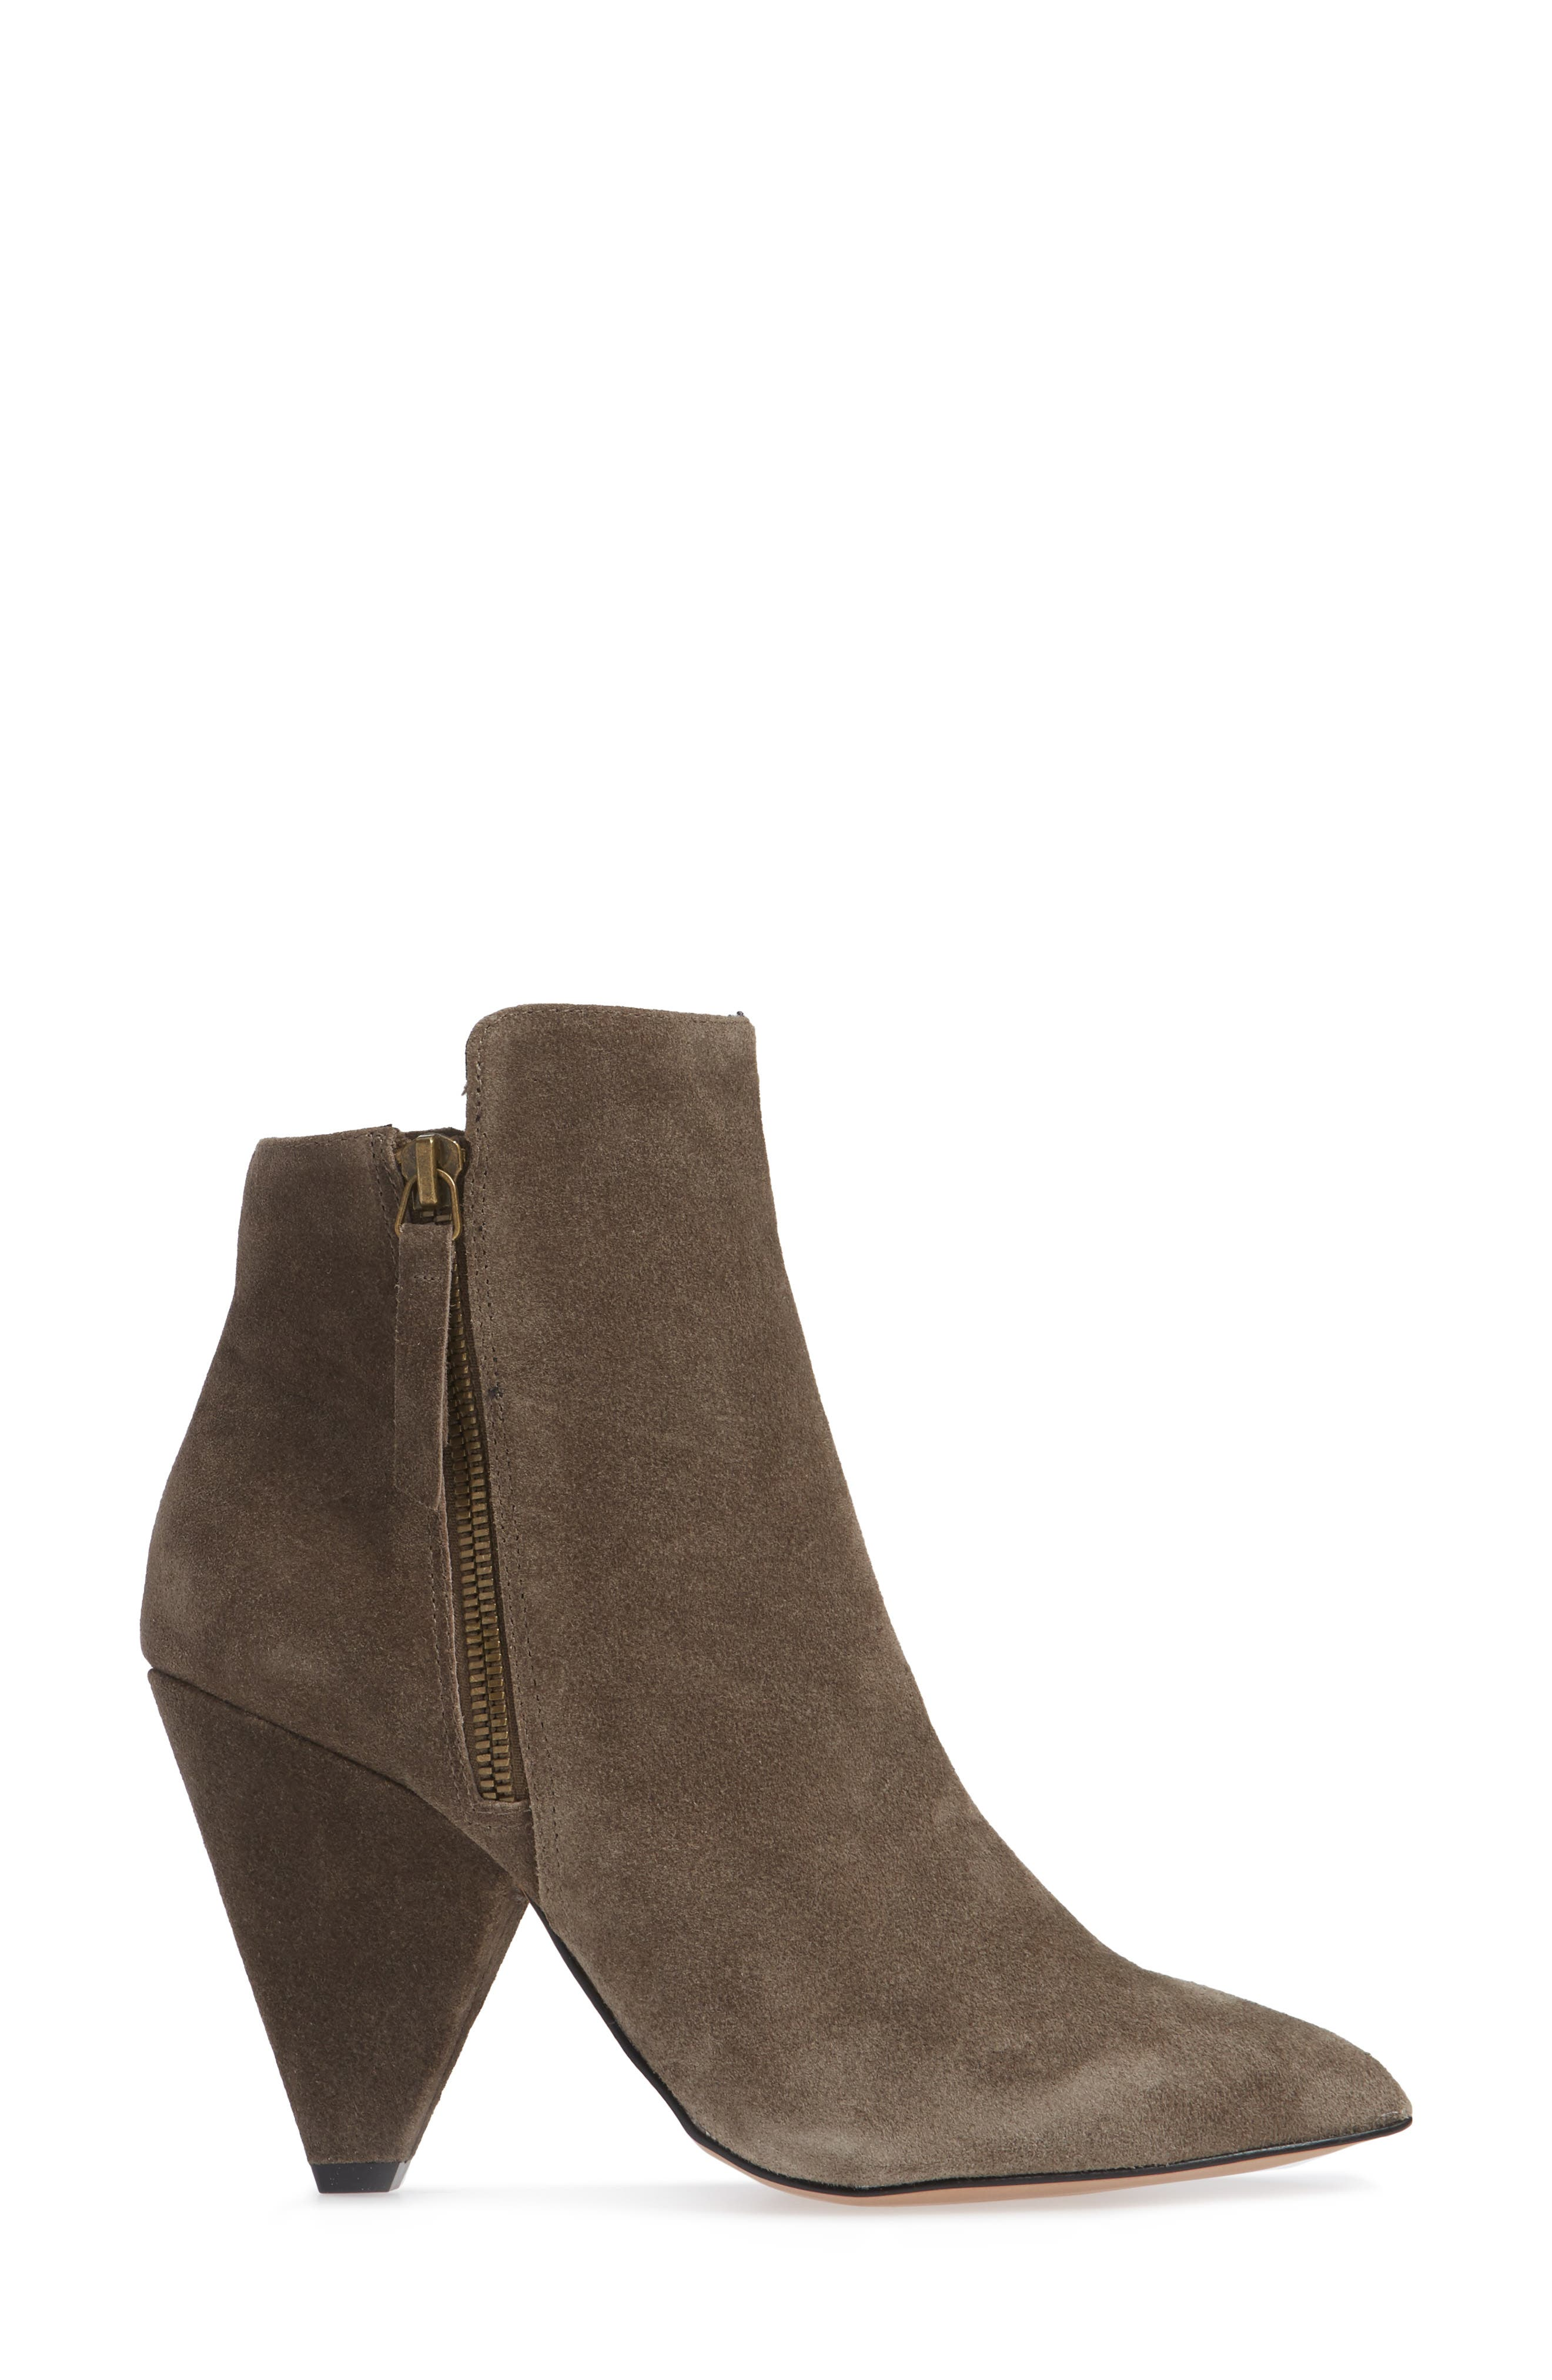 KENNETH COLE NEW YORK,                             Galway Bootie,                             Alternate thumbnail 3, color,                             063